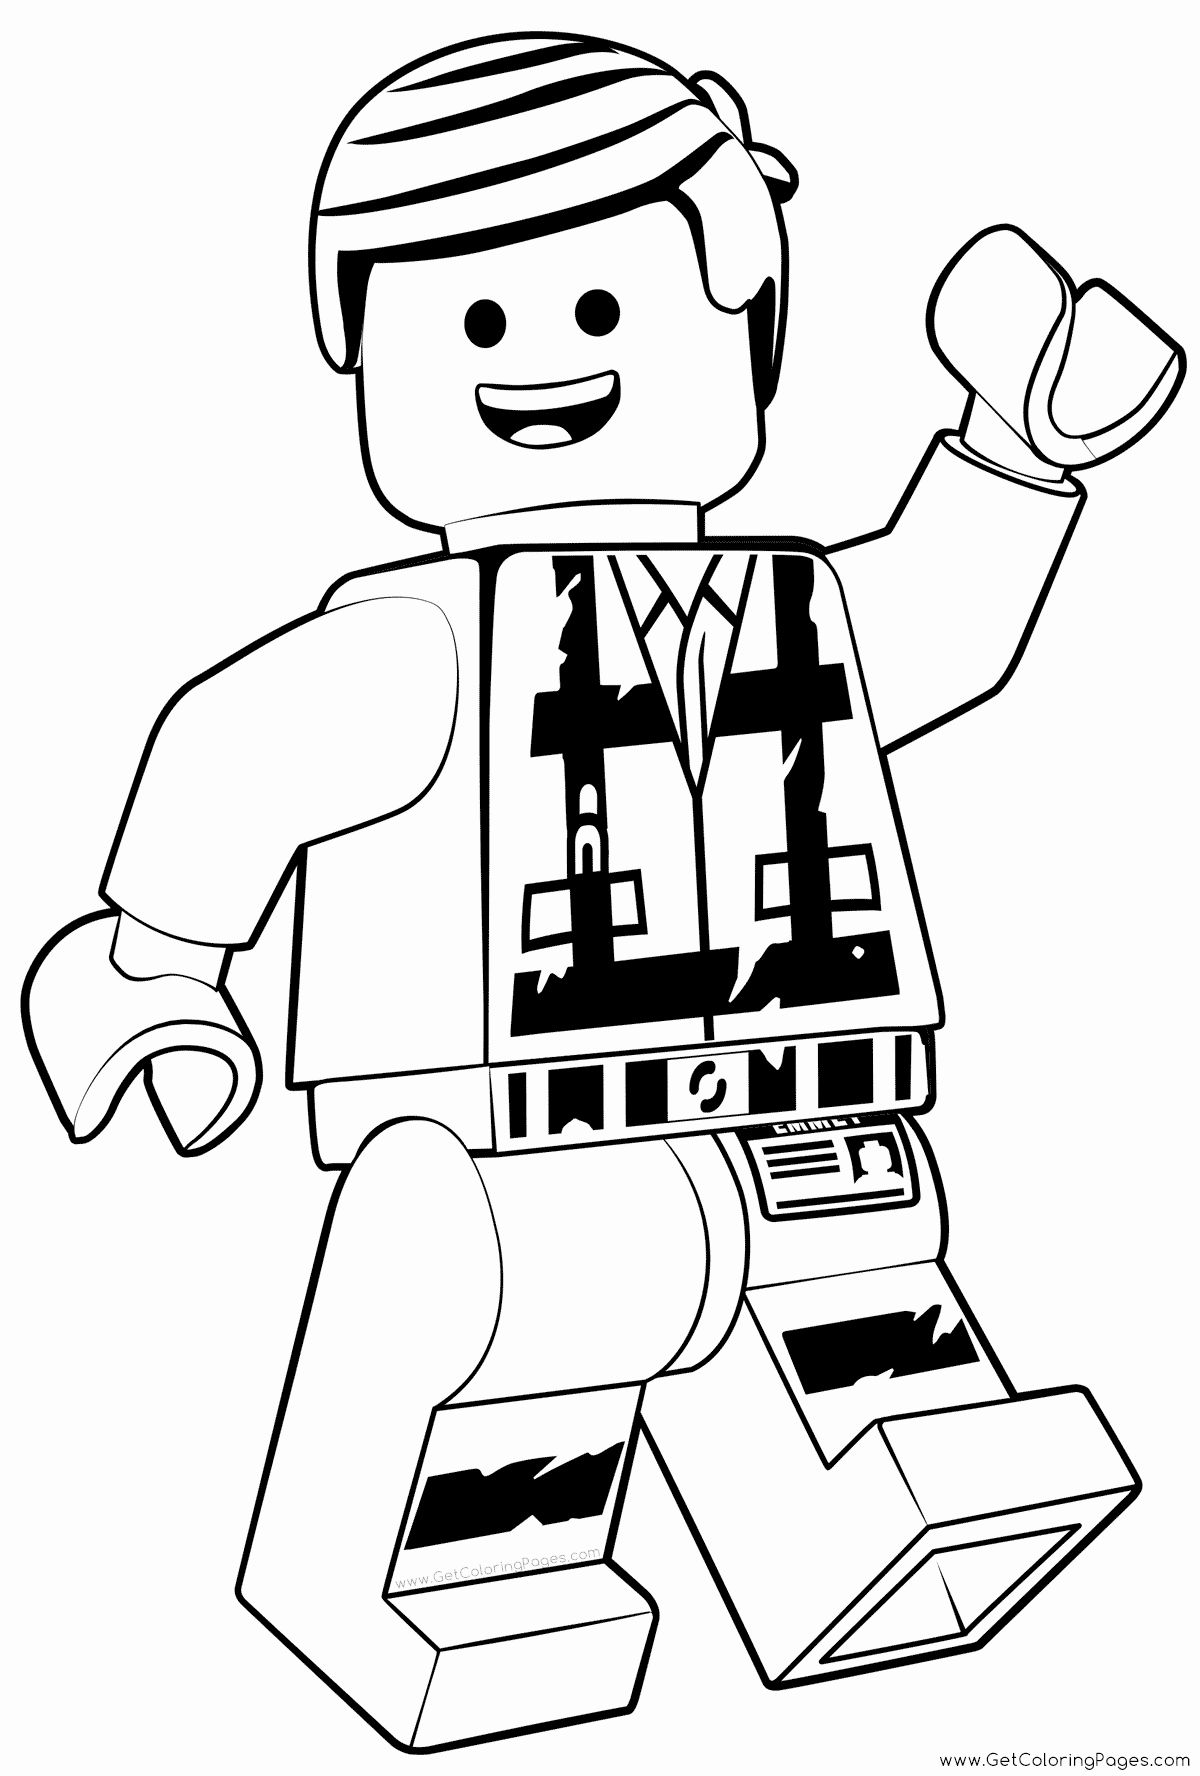 Lego Coloring Activities In 2020 Lego Coloring Pages Lego Movie